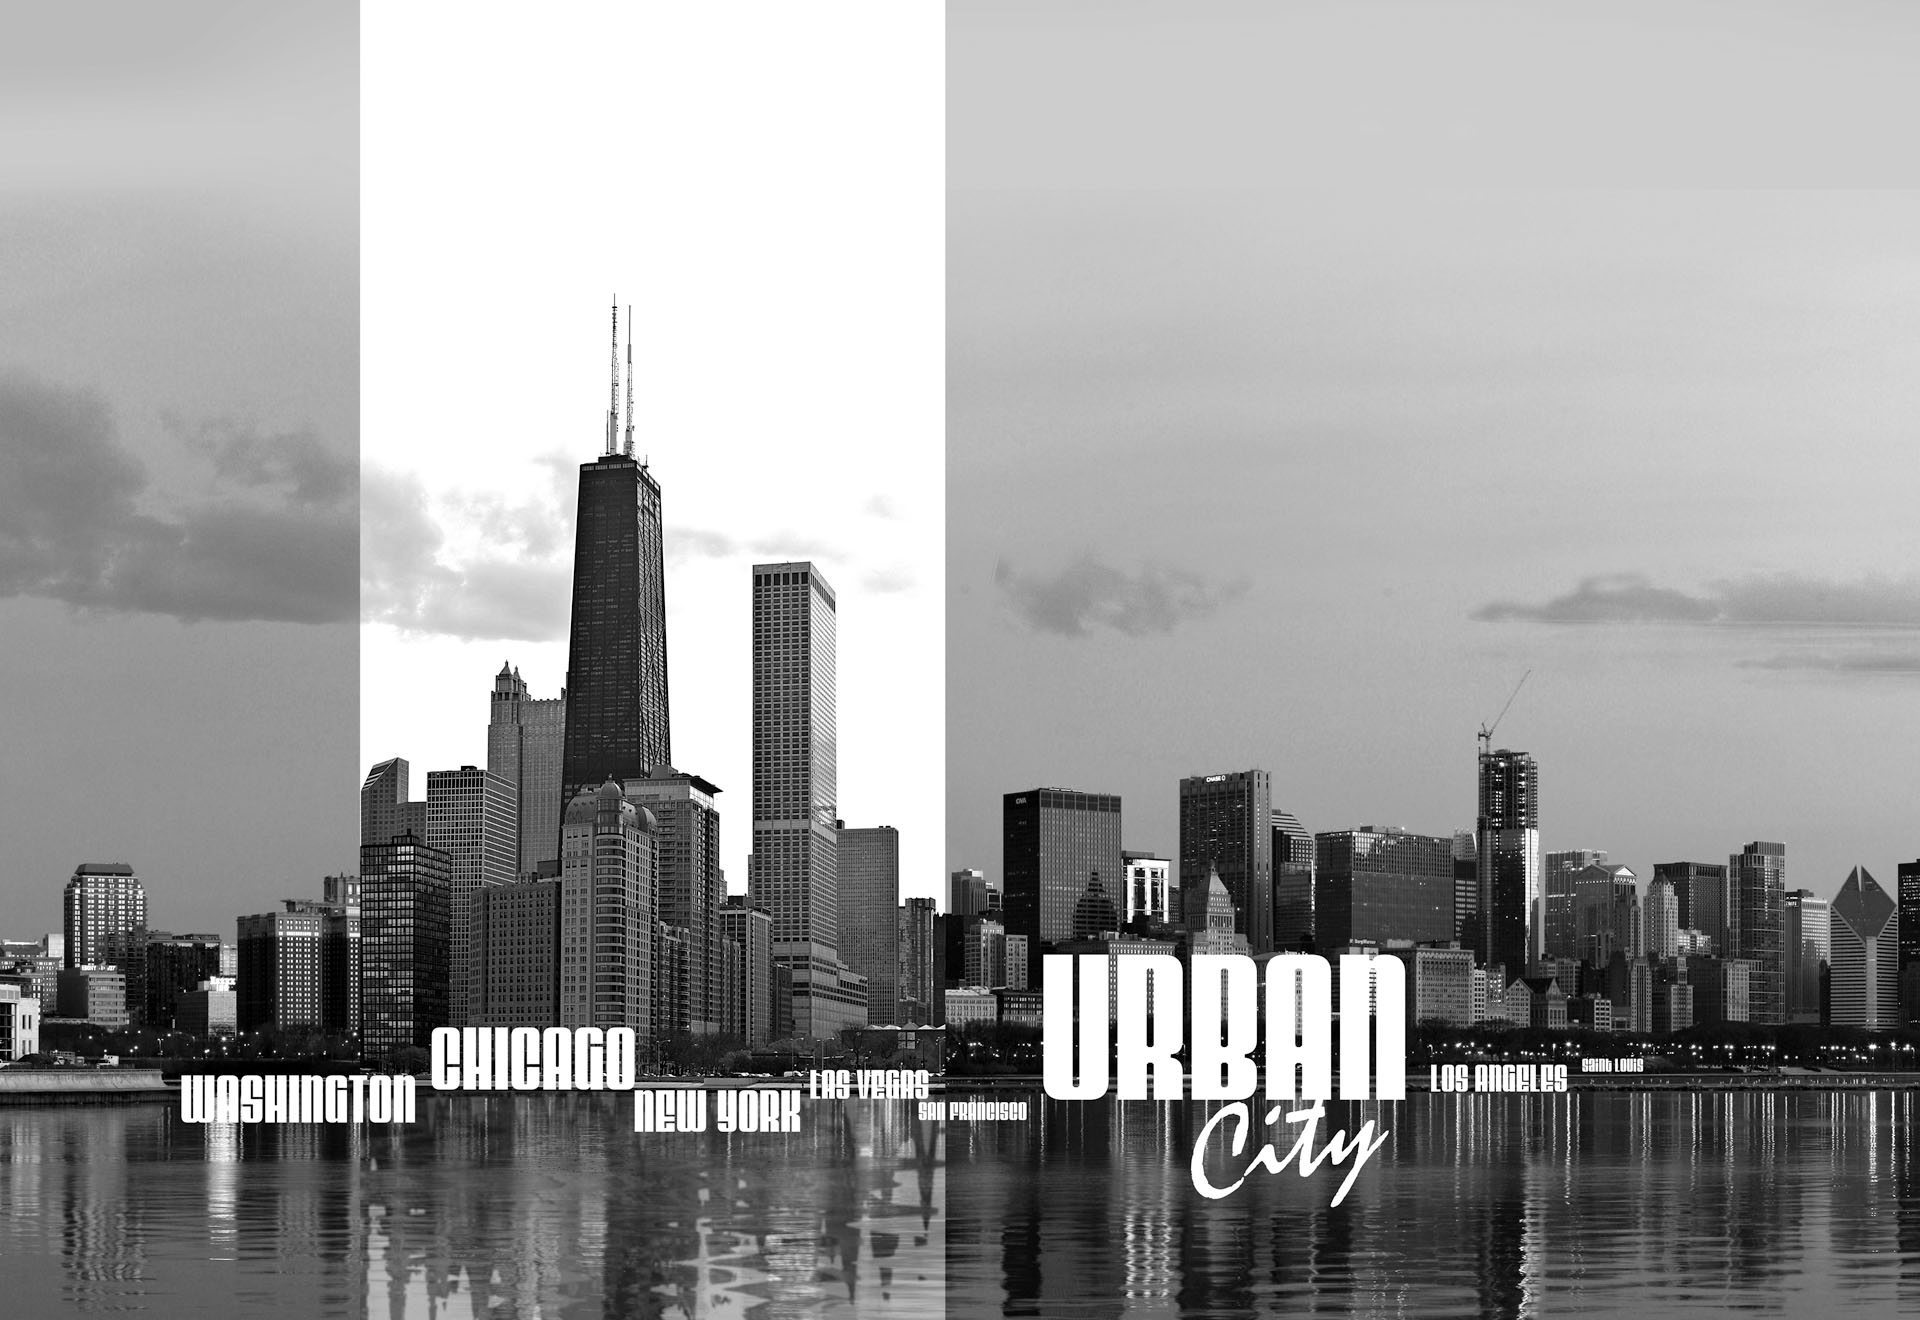 City Cities Skyline PHOTO WALLPAPER WALL MURAL ROOM DECOR 052VE 1920x1320